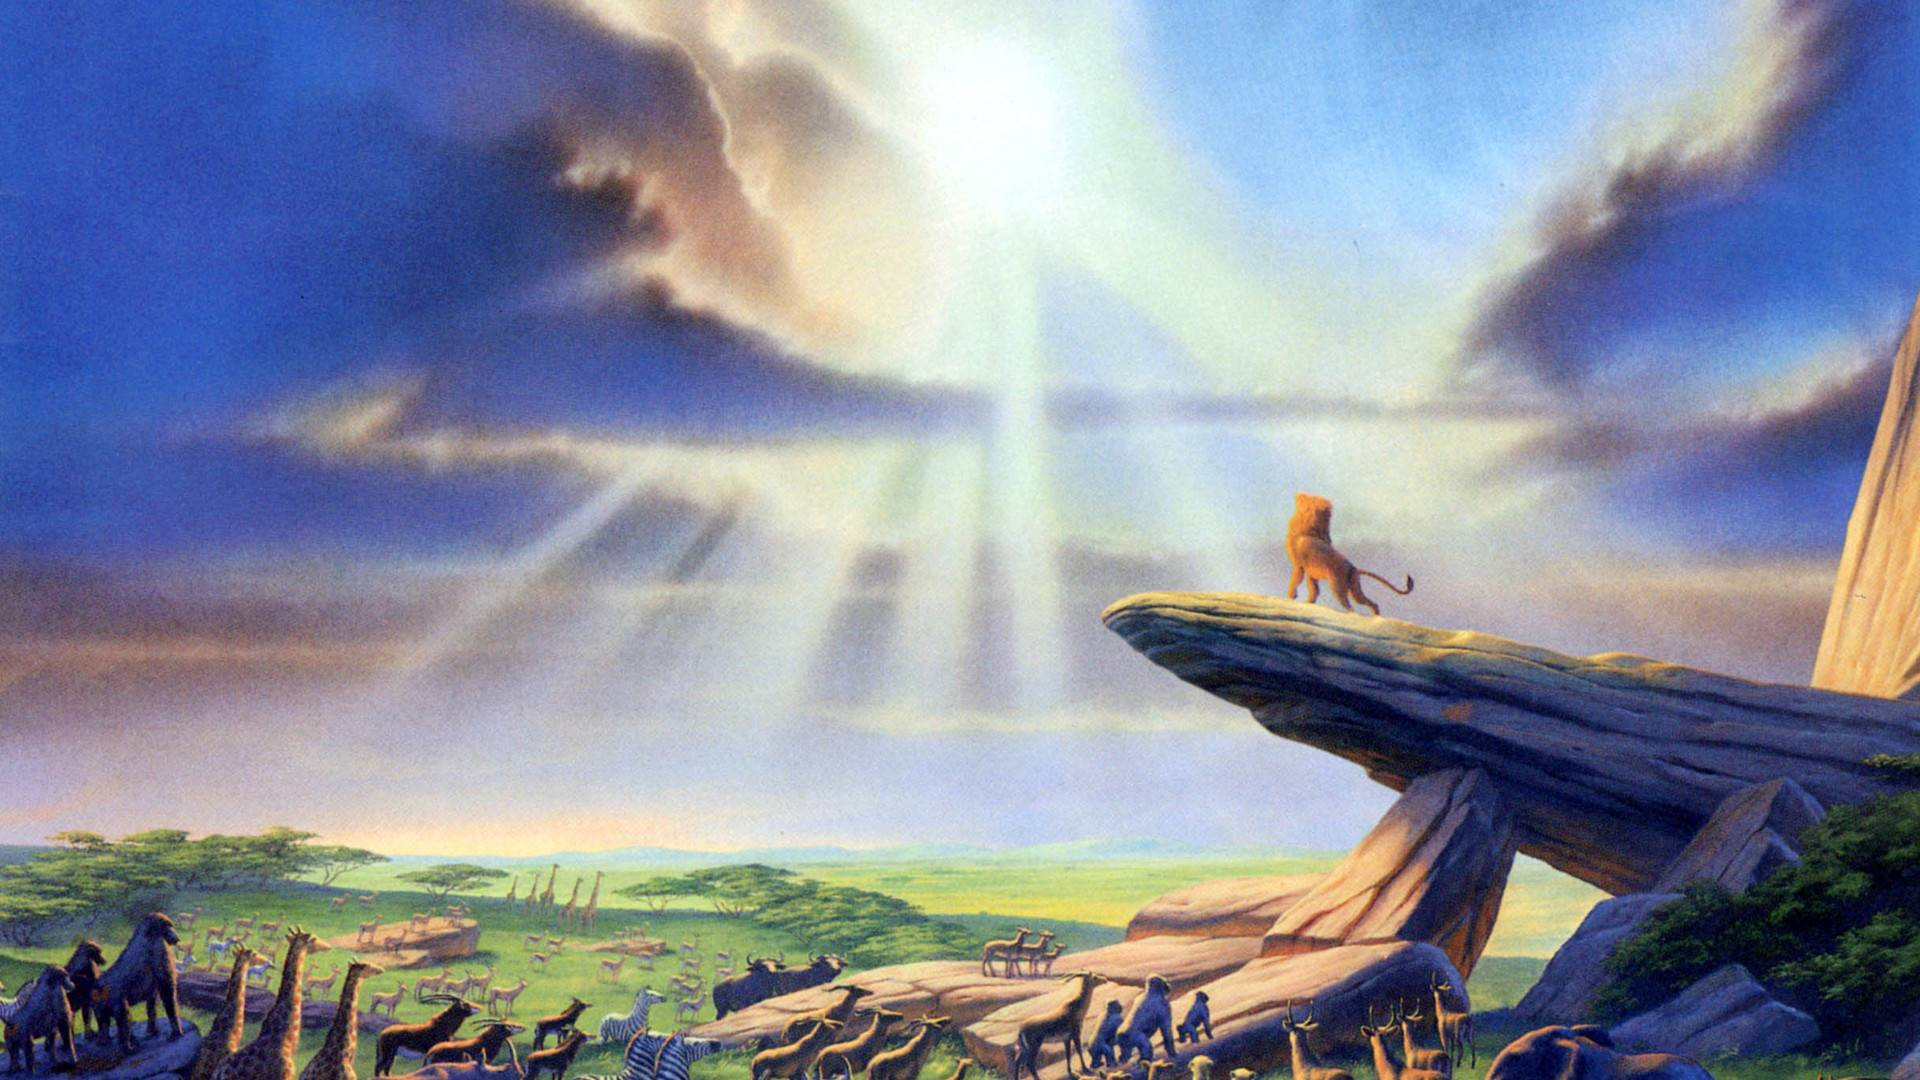 Lion King Backgrounds Hd Wallpaper Cave